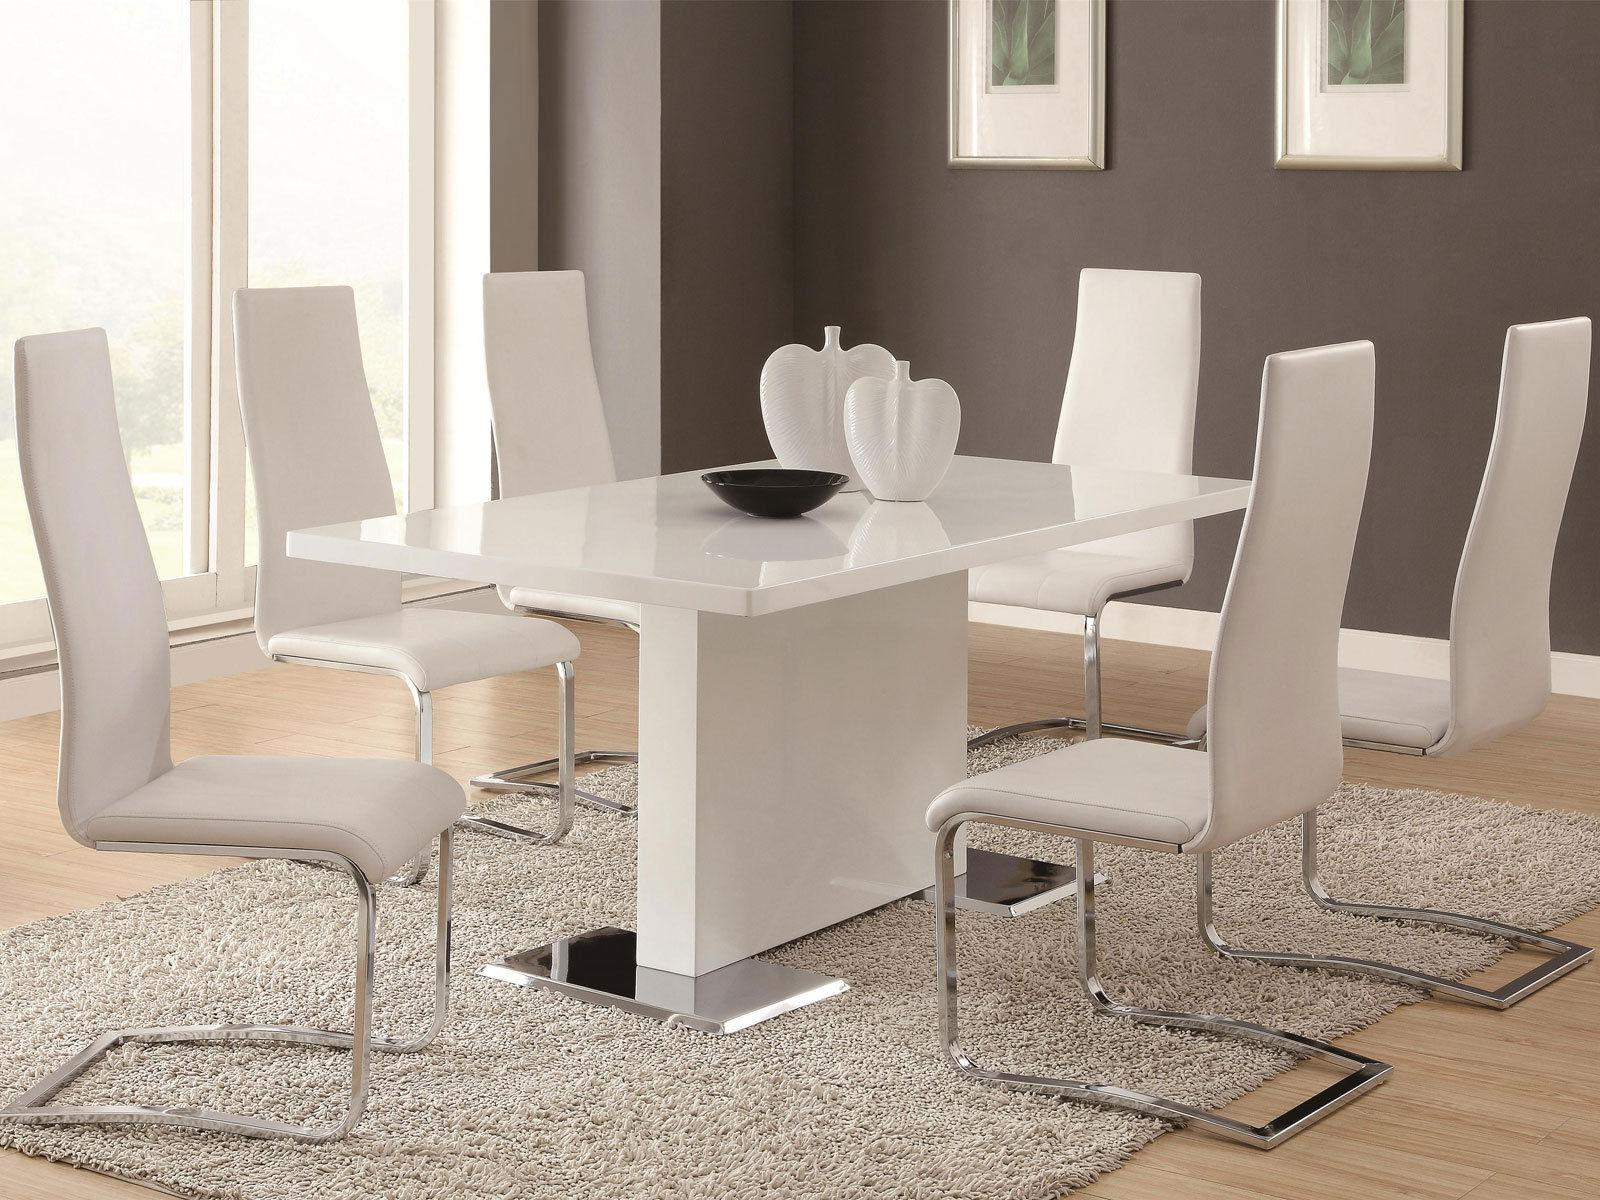 Image of: White Dining Table Ideas